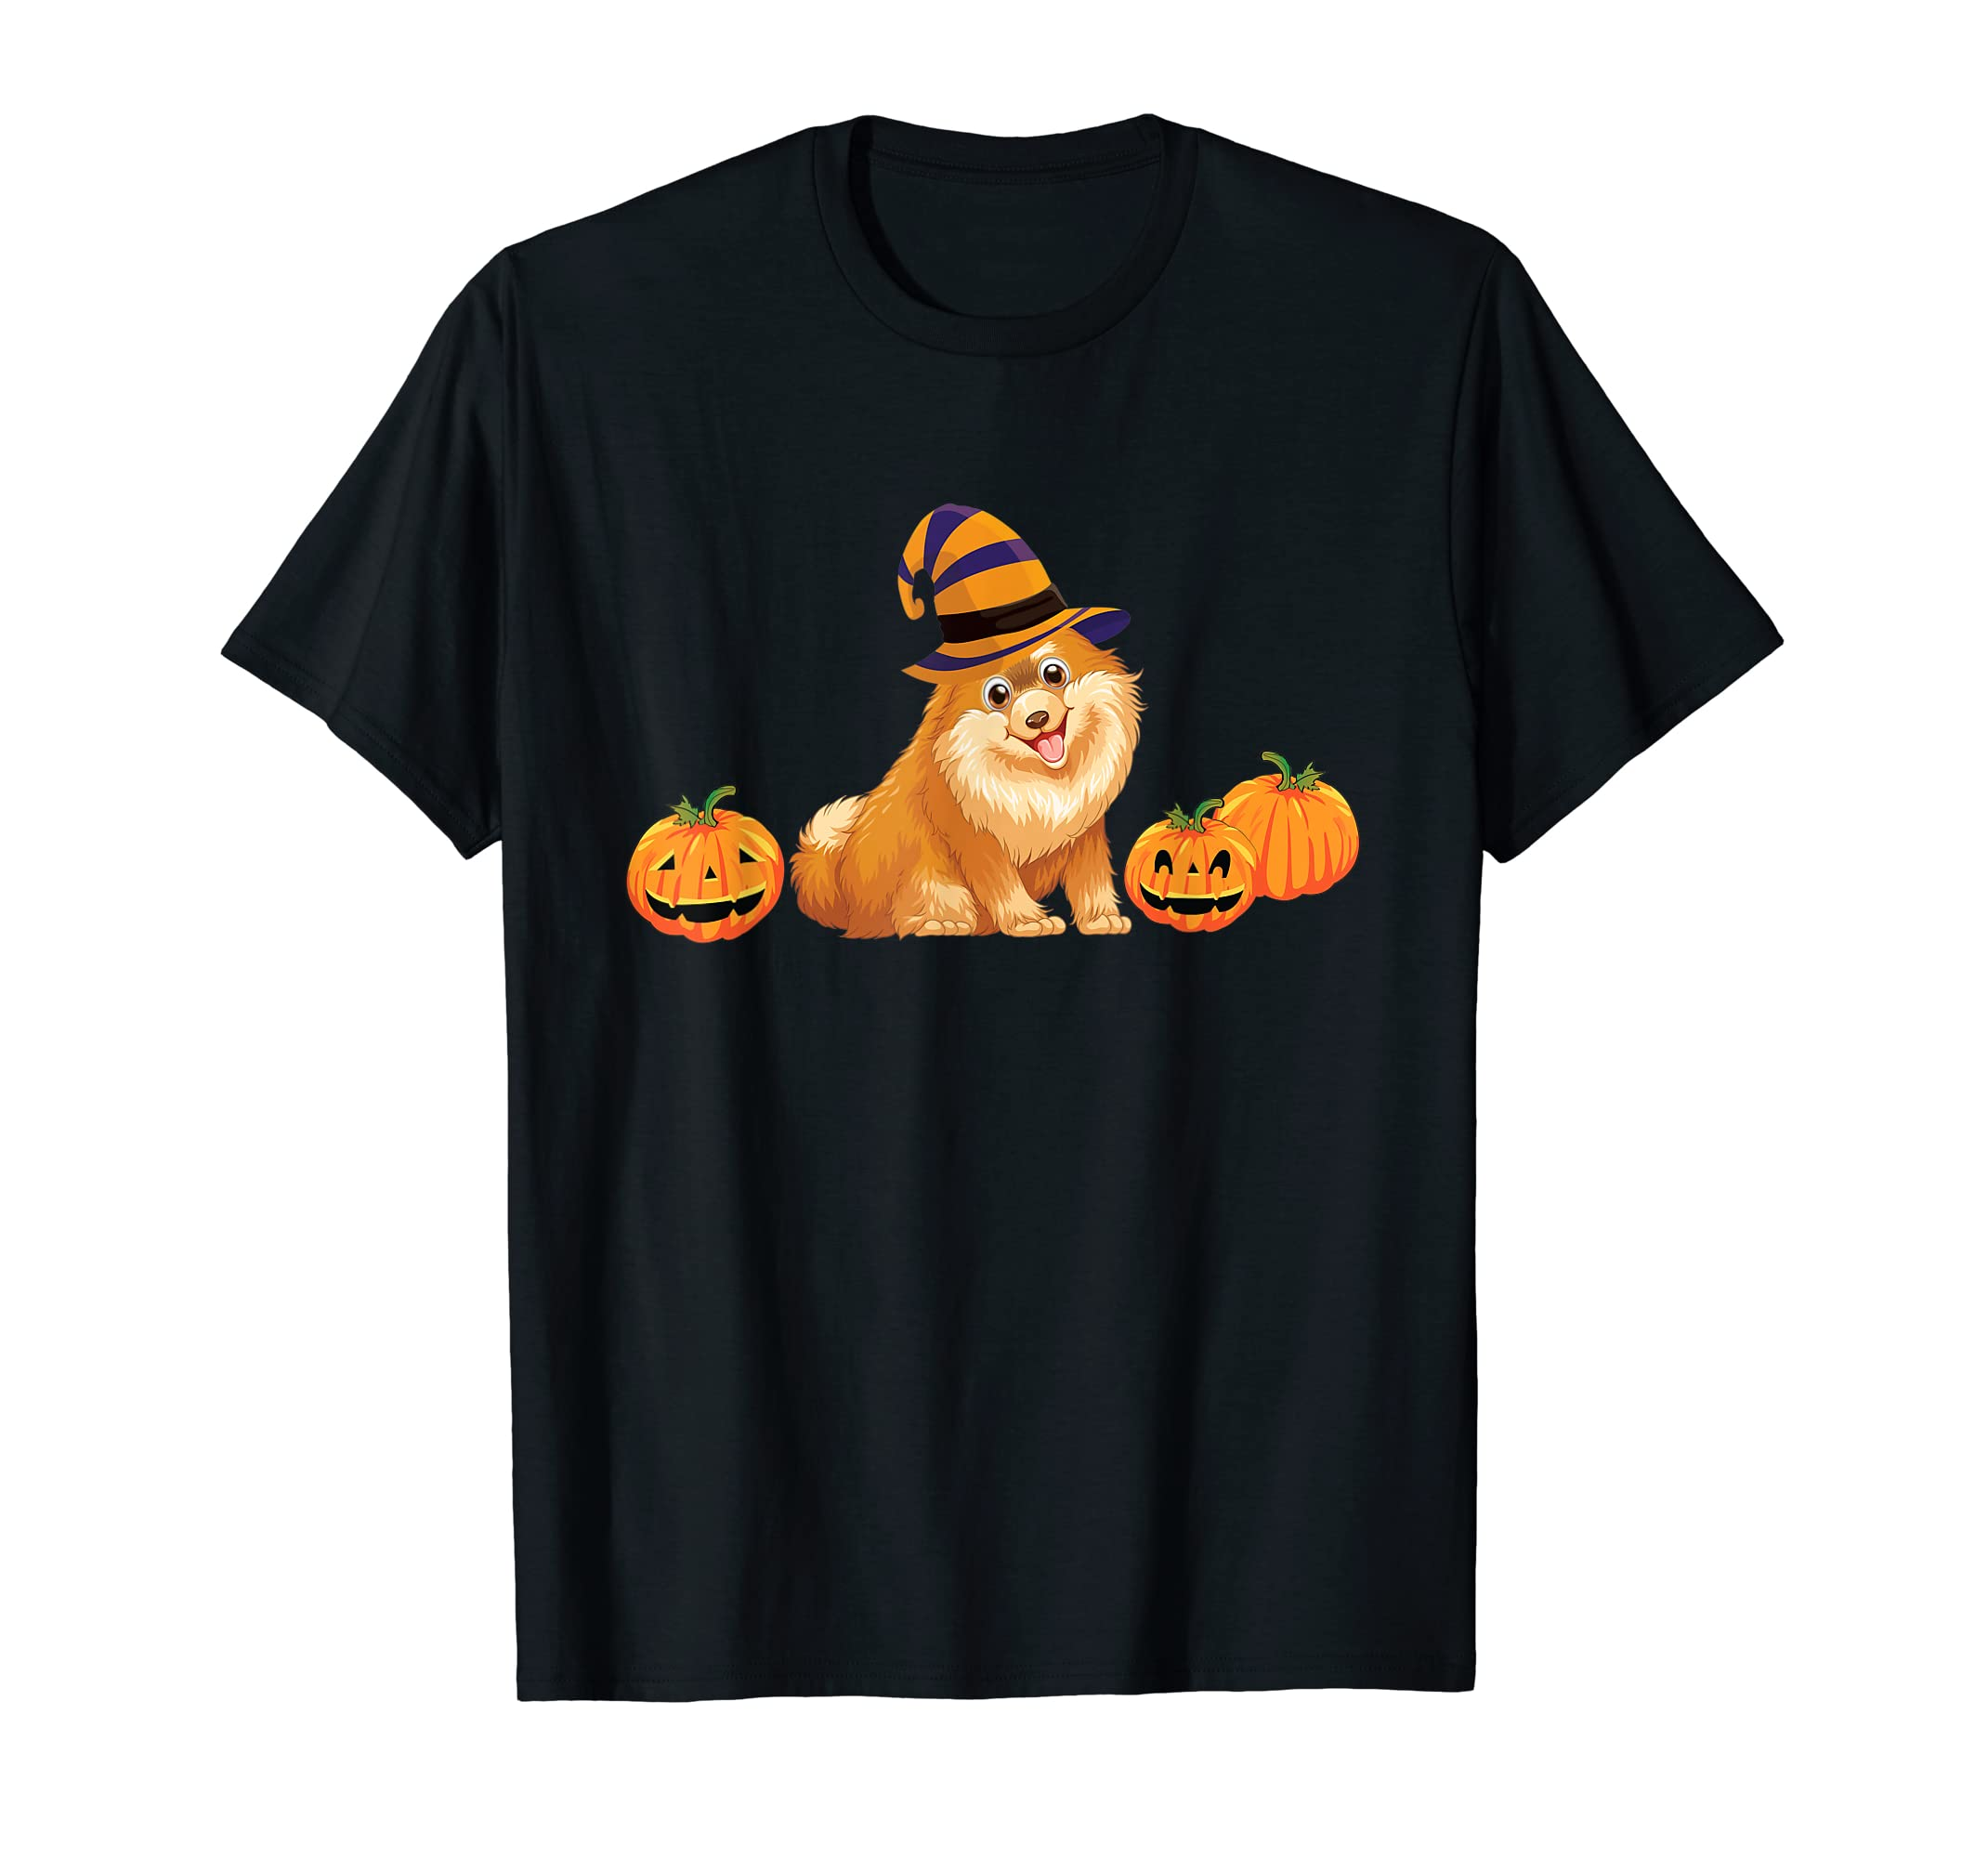 Pomeranian Dog Halloween Shirt Pug Lovers Pumpkin Tee-Men's T-Shirt-Black